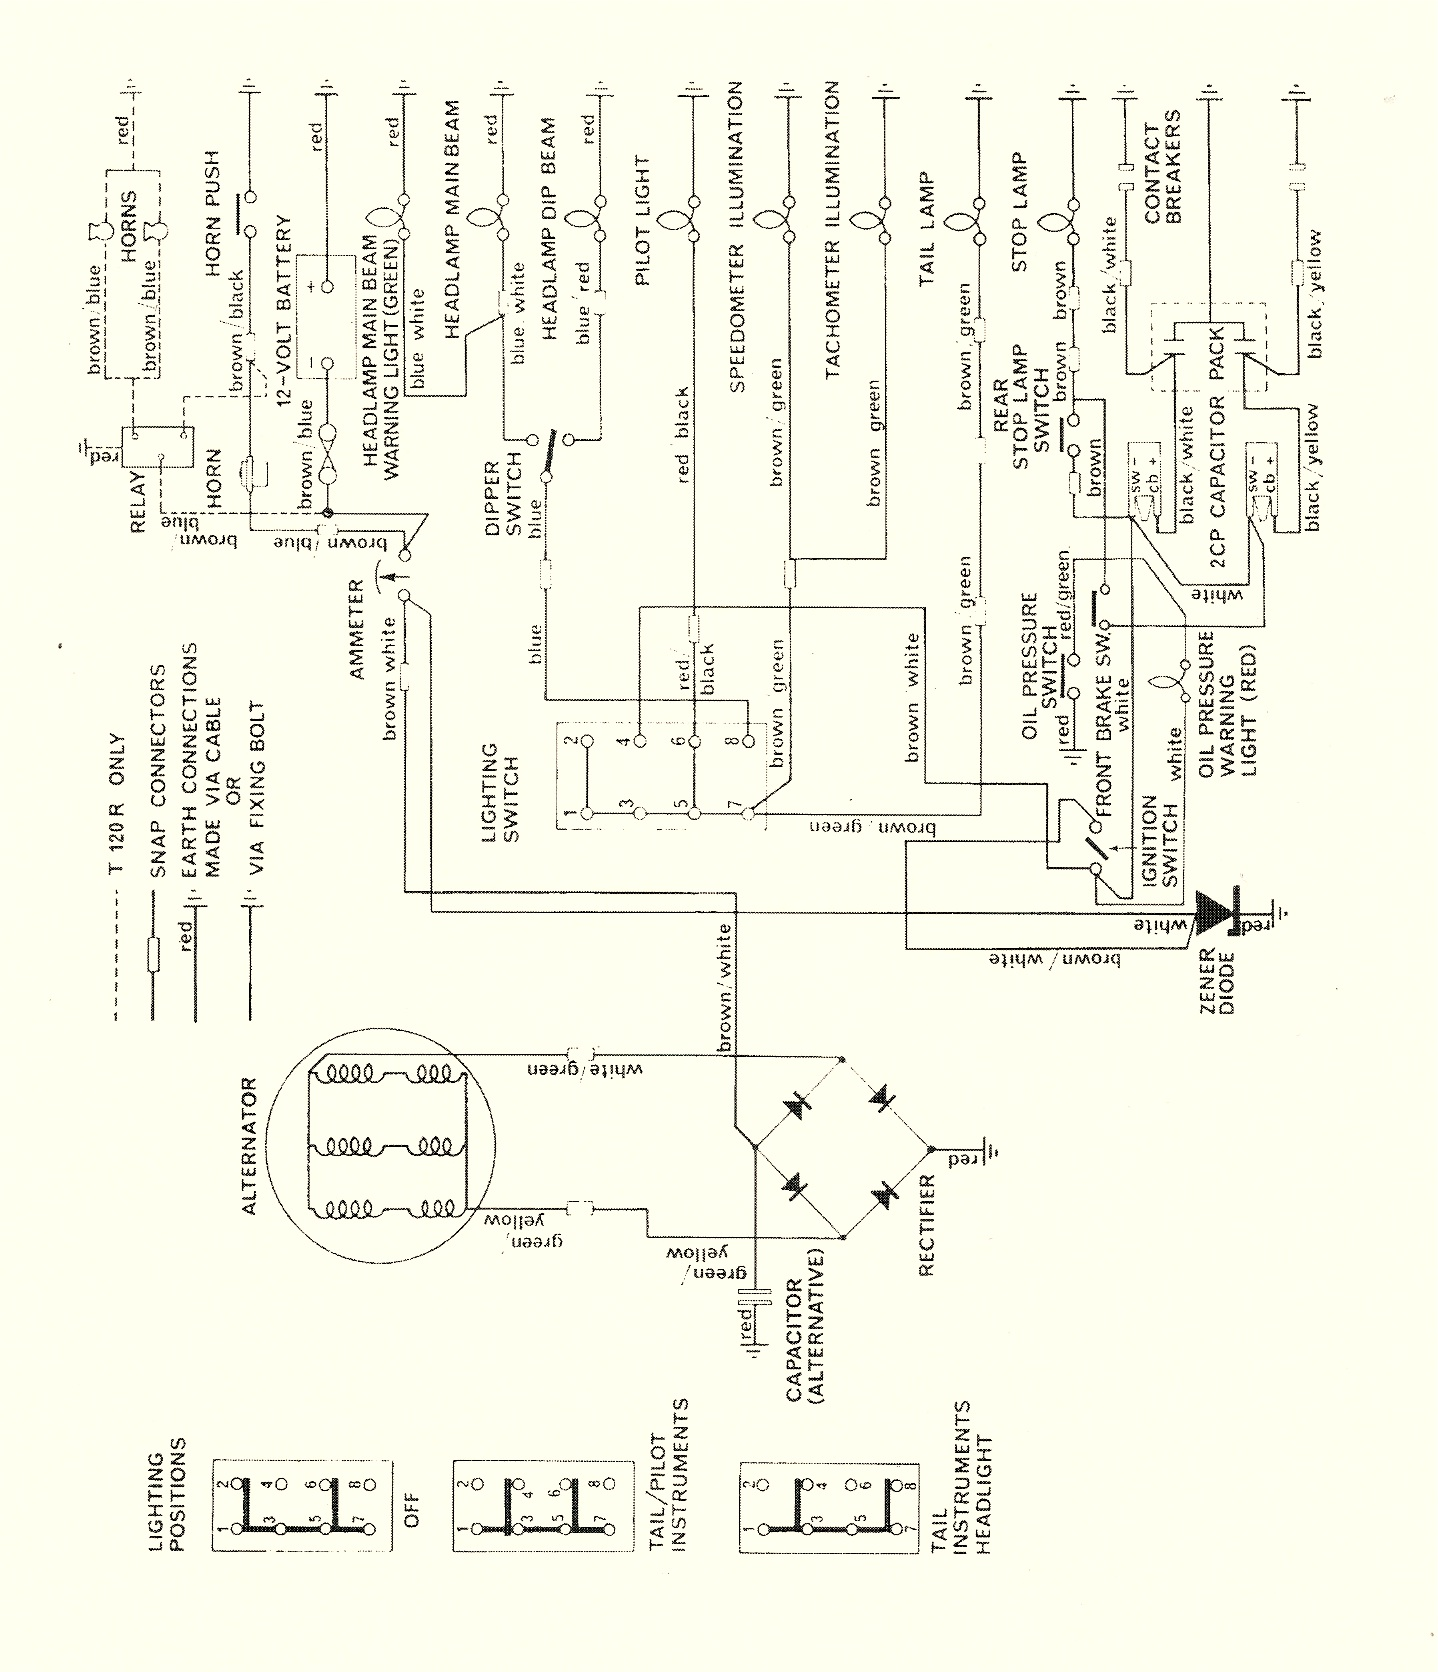 1970 triumph 650 Wiring Diagram triumph 650 wiring diagram triumph t100r wiring \u2022 wiring diagrams Wiring Harness Diagram at reclaimingppi.co